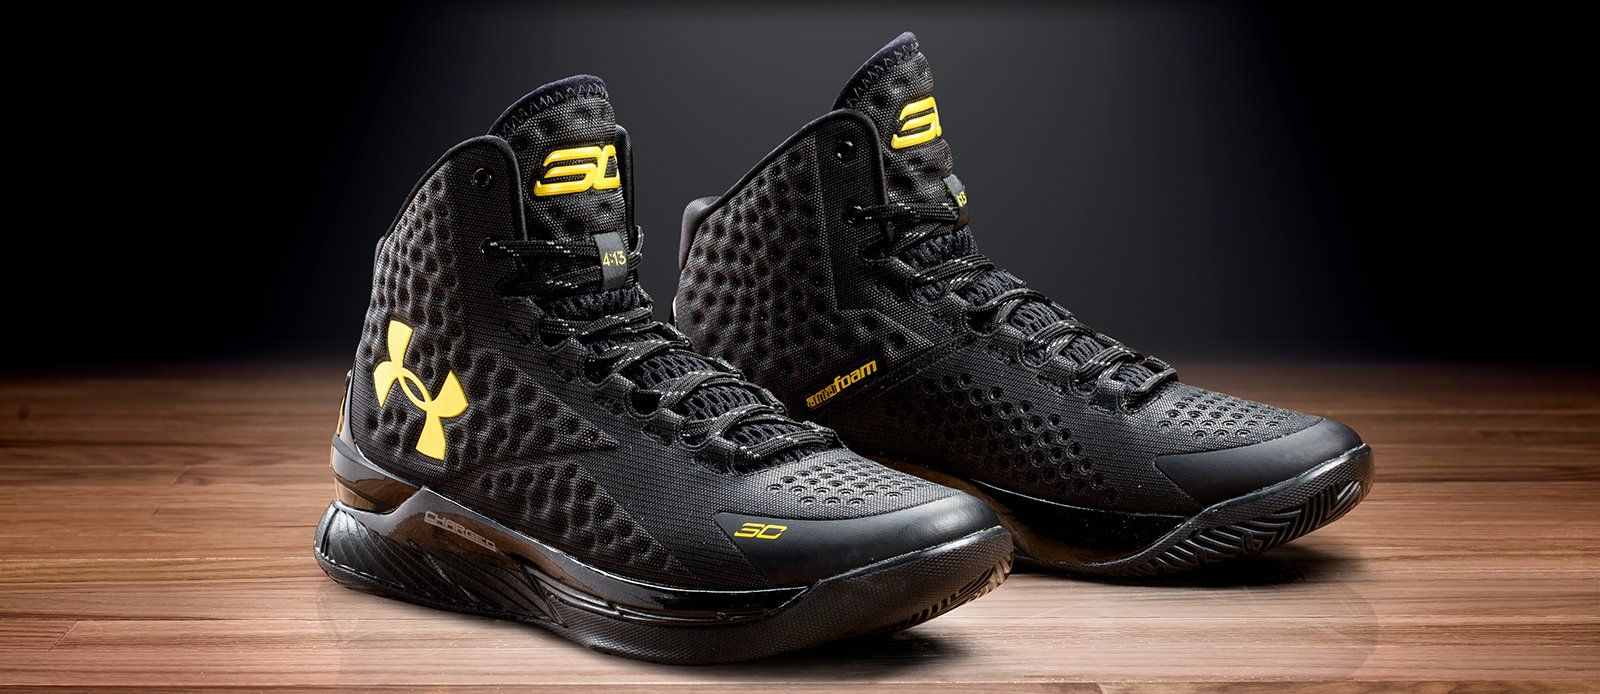 Do Under Armour Shoes Run Wide